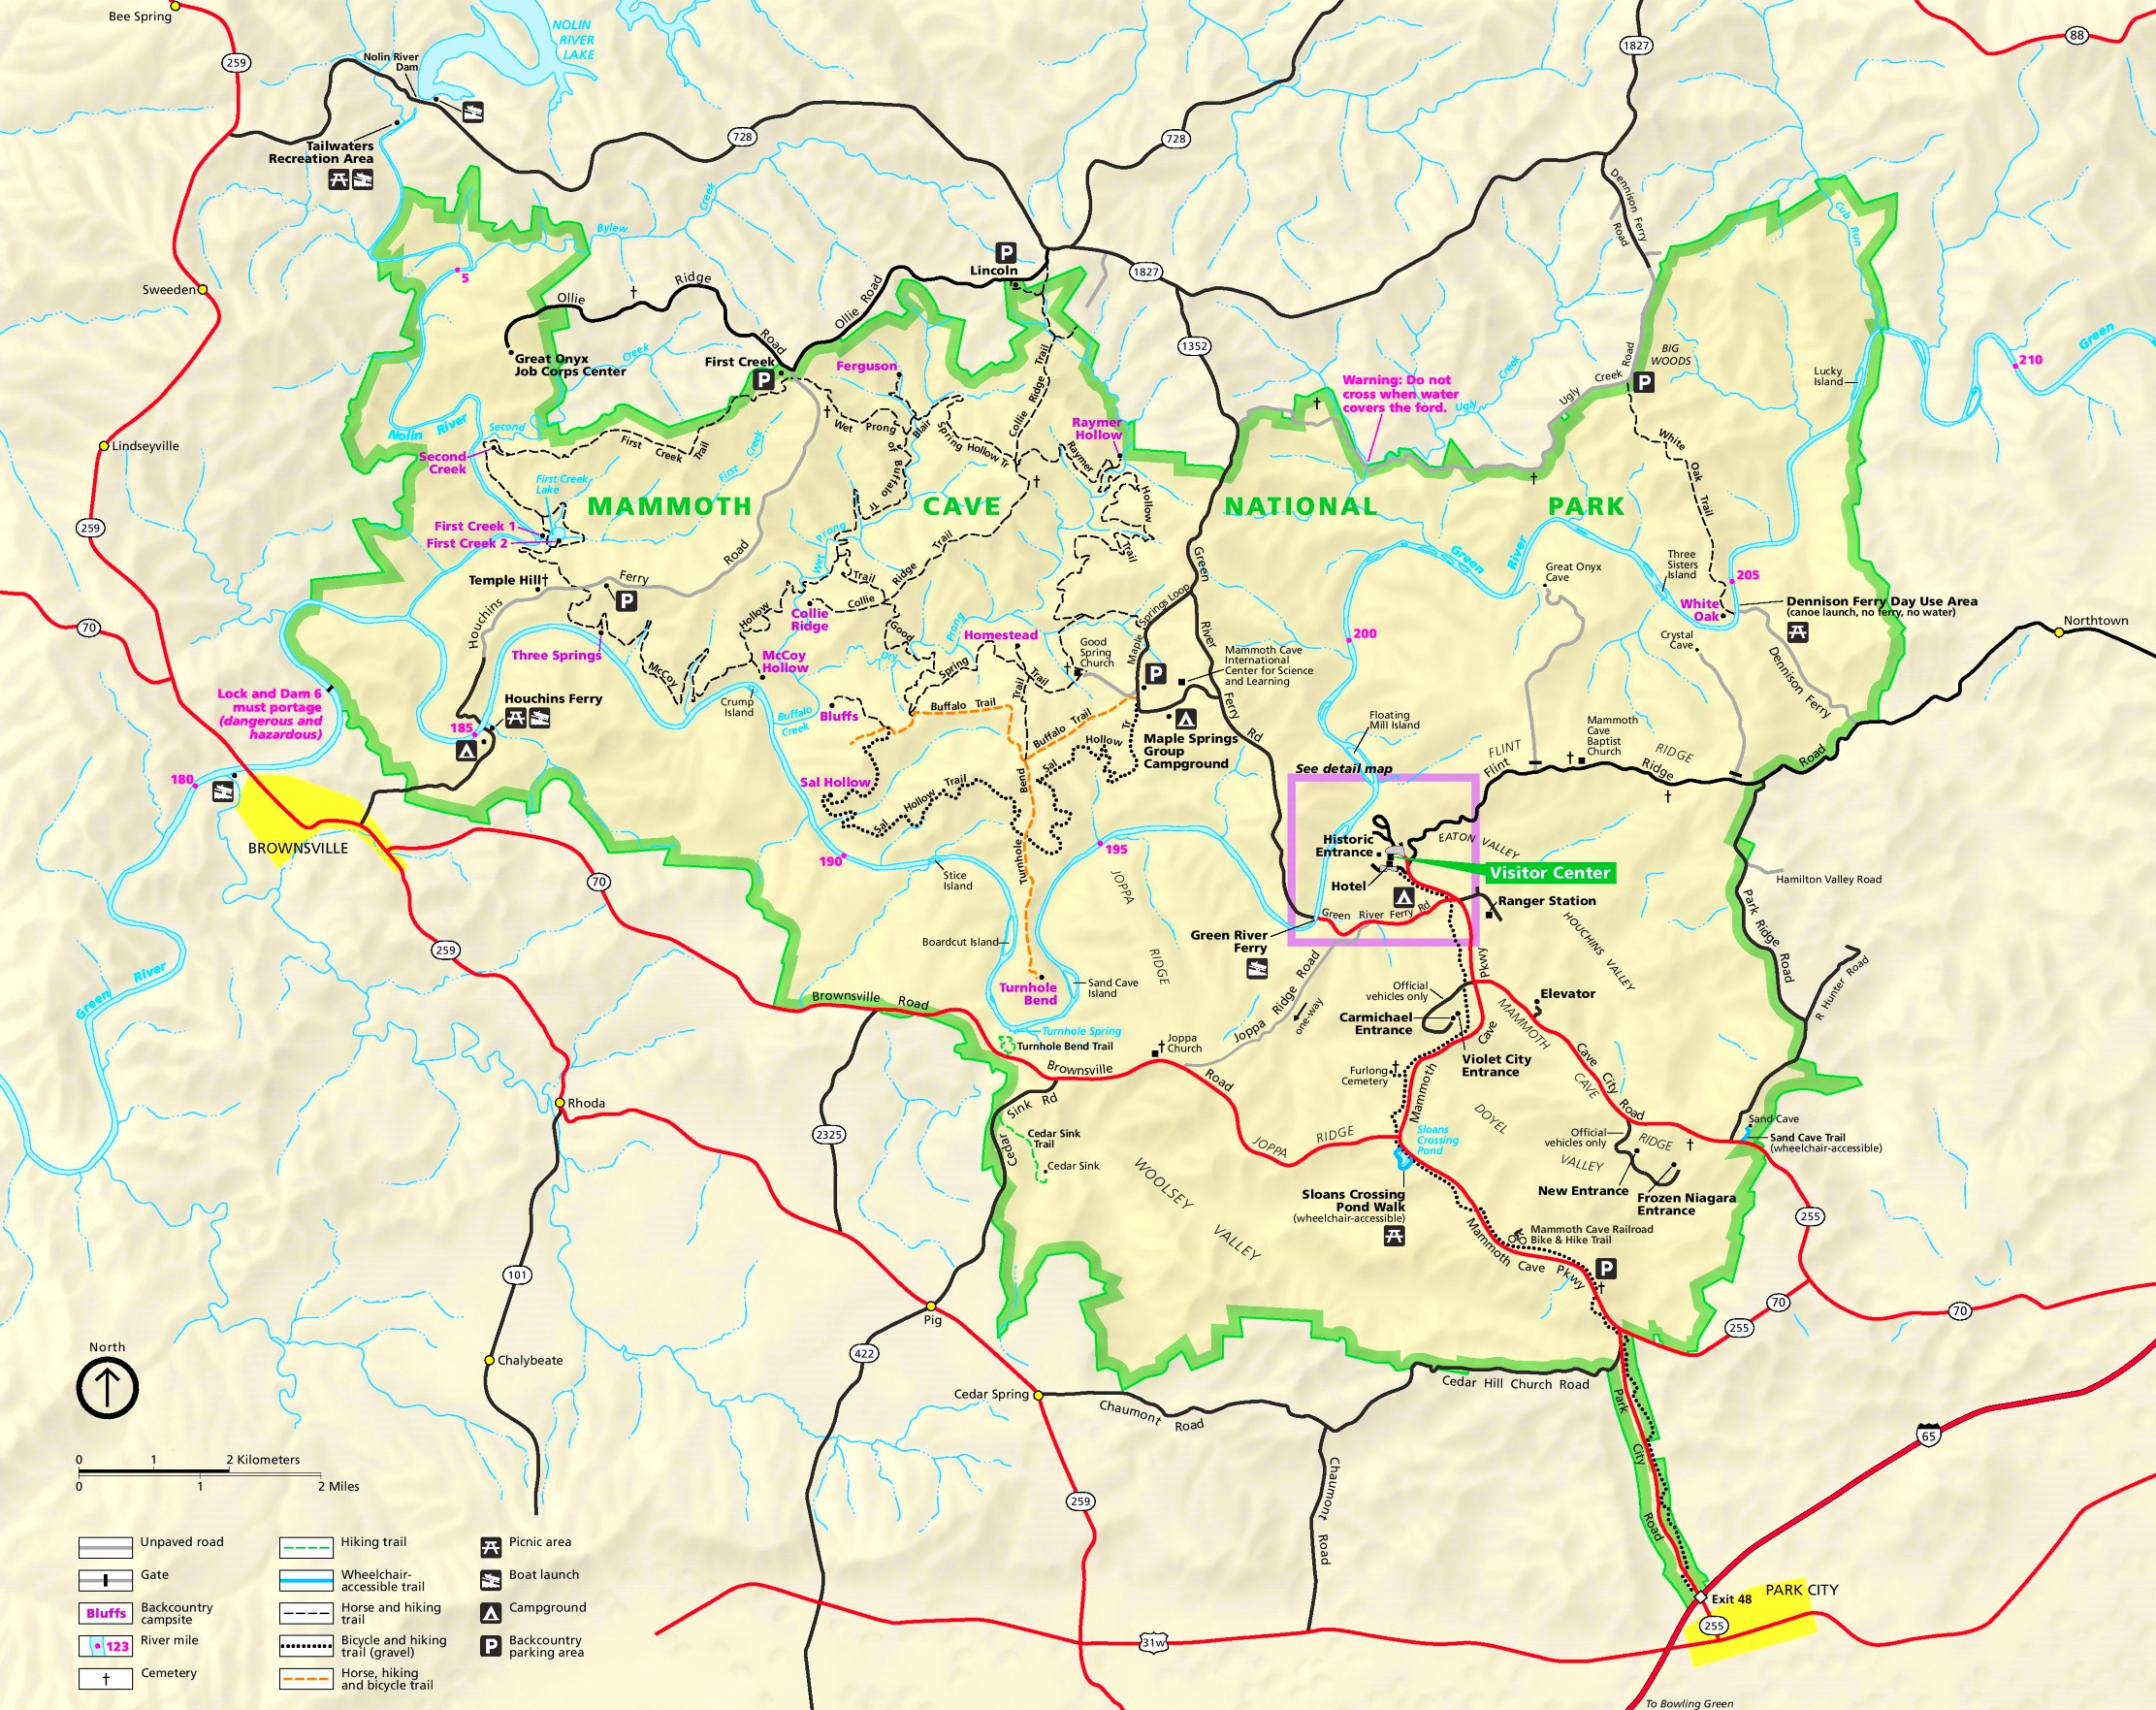 Mammoth Cave trail map on endless caverns map, cave junction oregon map, wind cave national park map, the land of painted caves map, mammoth caves tennessee, glacier national park, shenandoah national park, carlsbad caverns national park, yellowstone national park on a map, hawaii volcanoes national park, great smoky mountains national park, colorado river map, sequoia national park, crater lake national park, u.s. forest map, grand canyon national park, jewel cave national monument, badlands national park, bigfoot cave map, ky state parks map, mesa verde national park, petrified forest map, wonder cave map, acadia national park, cosmic cavern map, caves in new mexico map, black canyon of the gunnison map, sylvan cave map, timpanogos cave national monument map, hot springs national park, olympic national park, great onyx cave map, cuyahoga valley national park, yosemite national park, redwood national and state parks, cave of the winds map, wind cave national park, mountain river cave vietnam map,